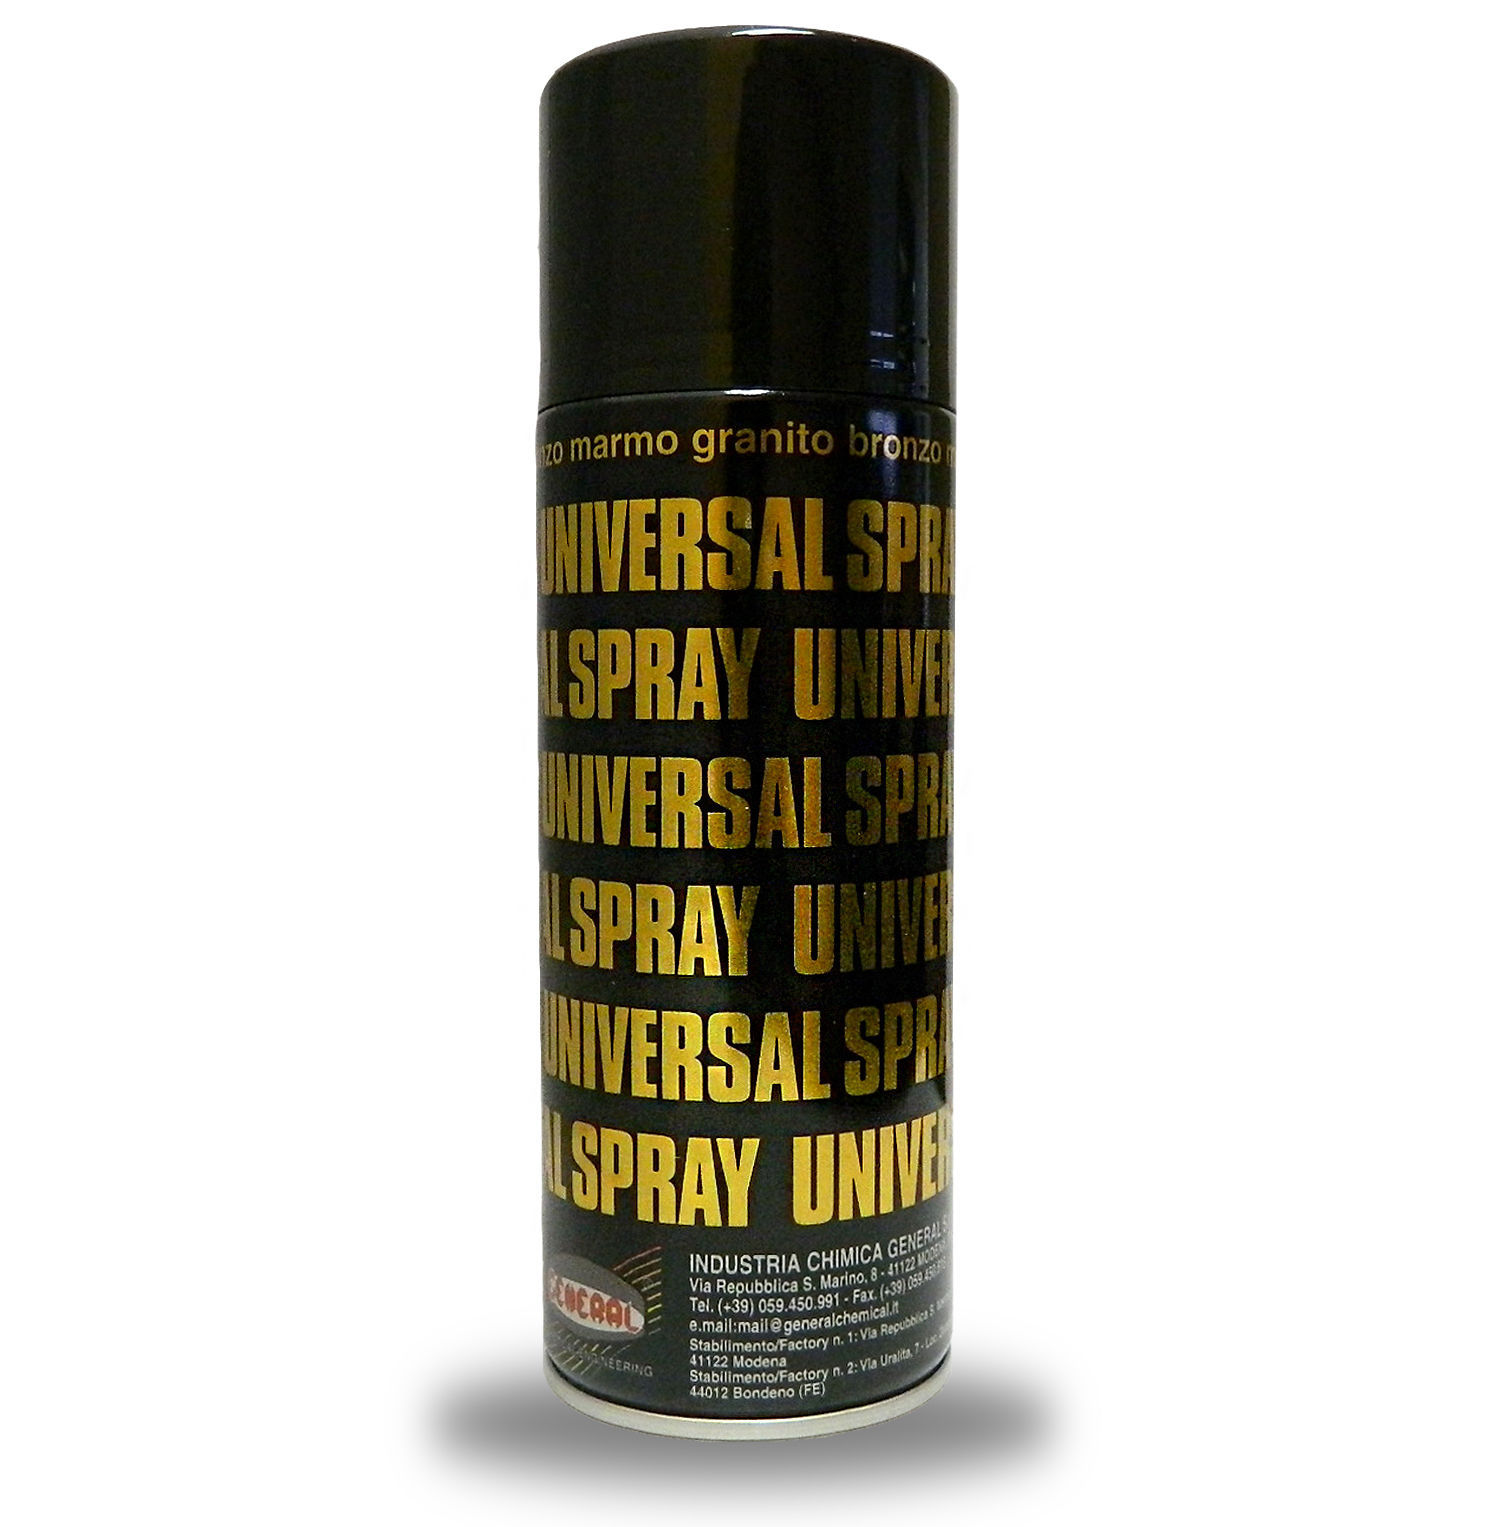 Primary image for UNIVERSAL SPRAY-LIQUID SELF-POLISHER, REVIVER, WATERPROOFING  - TENAX / AKEMI